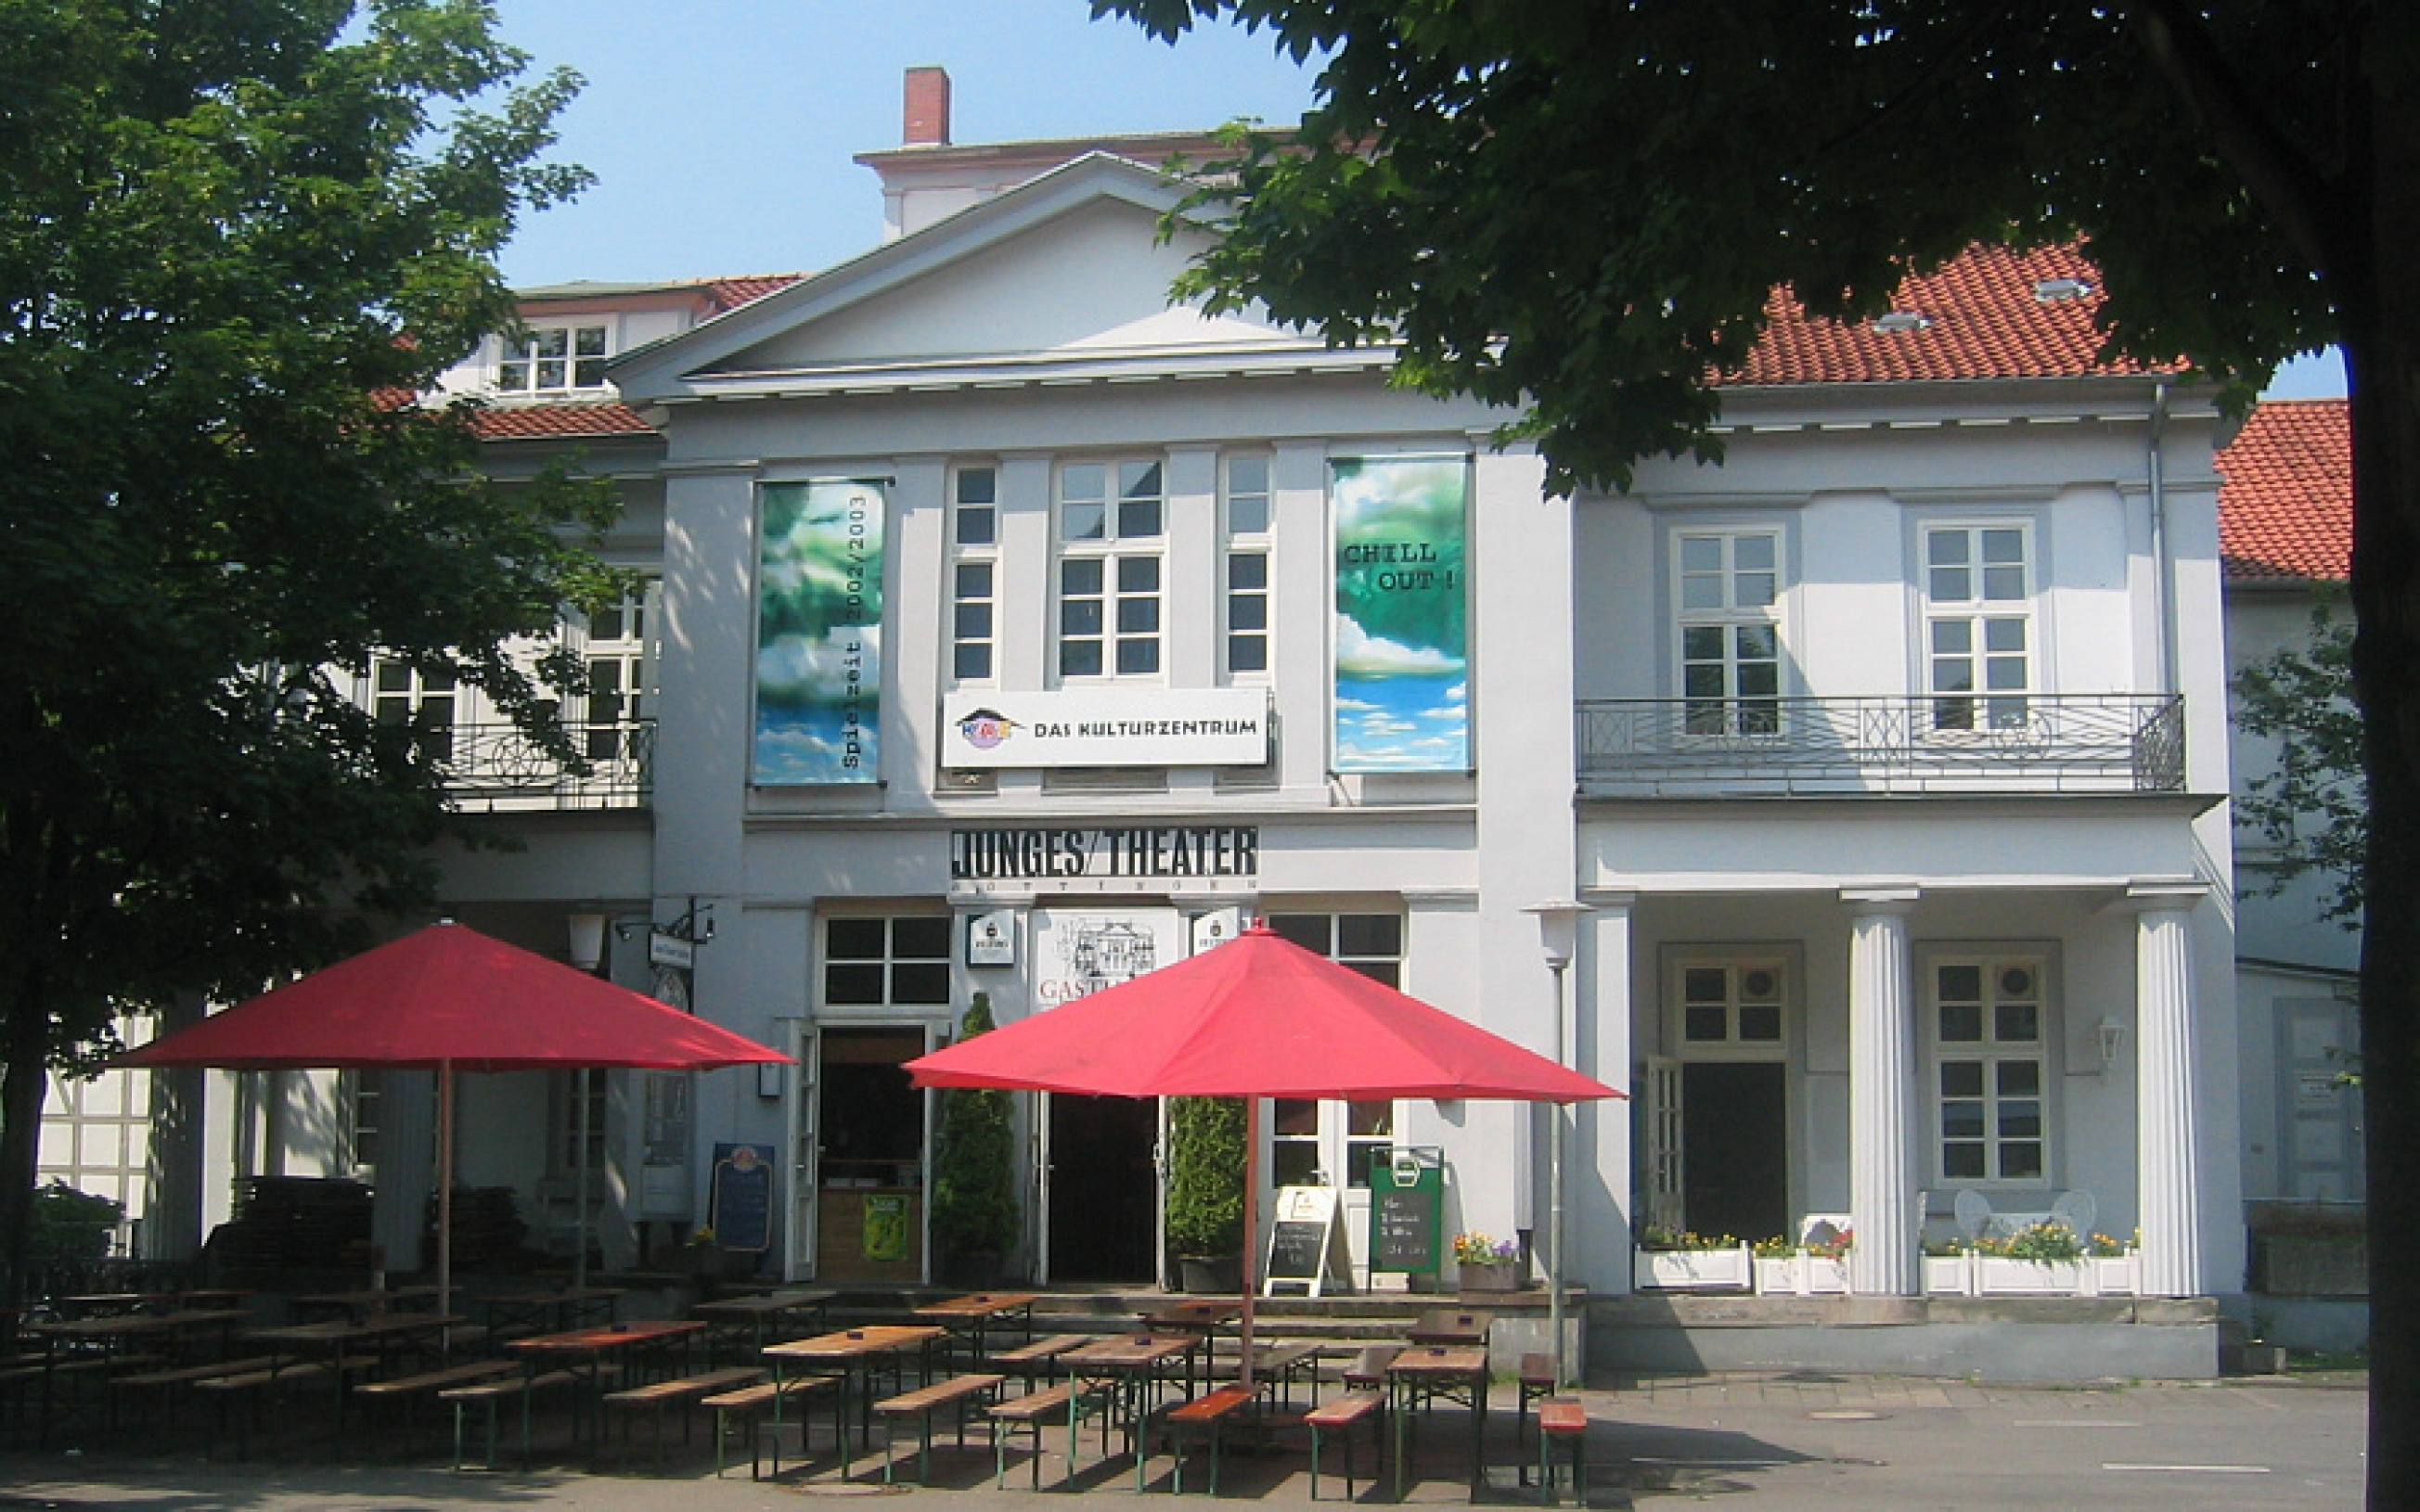 Göttingen, Germany: Junges Theater